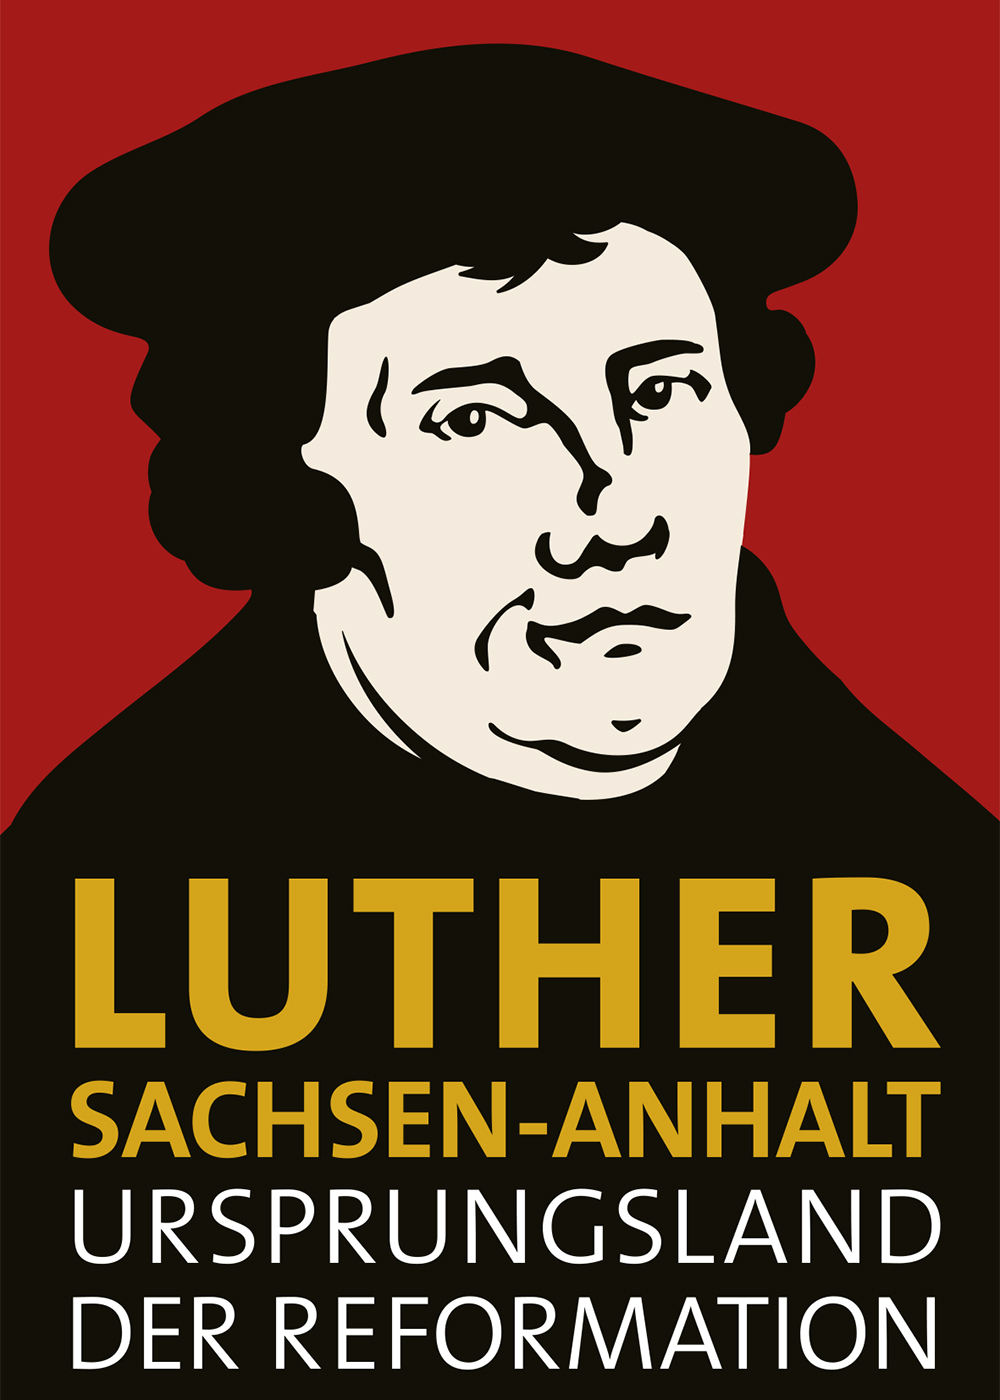 Reformationstag Wo Frei